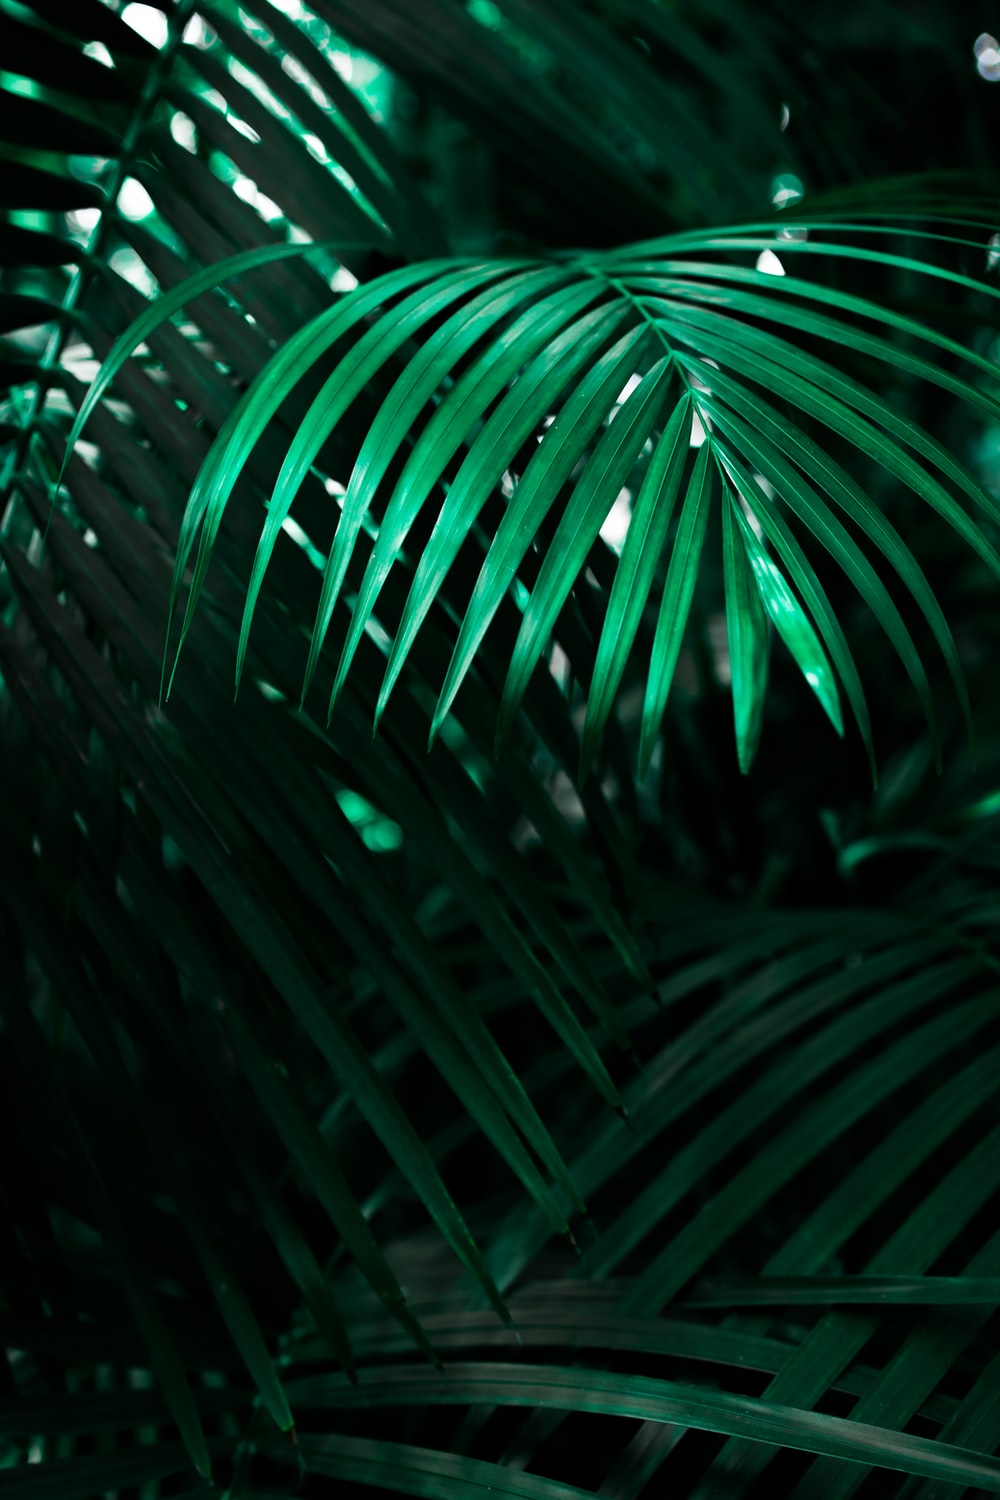 green linear leafed plant